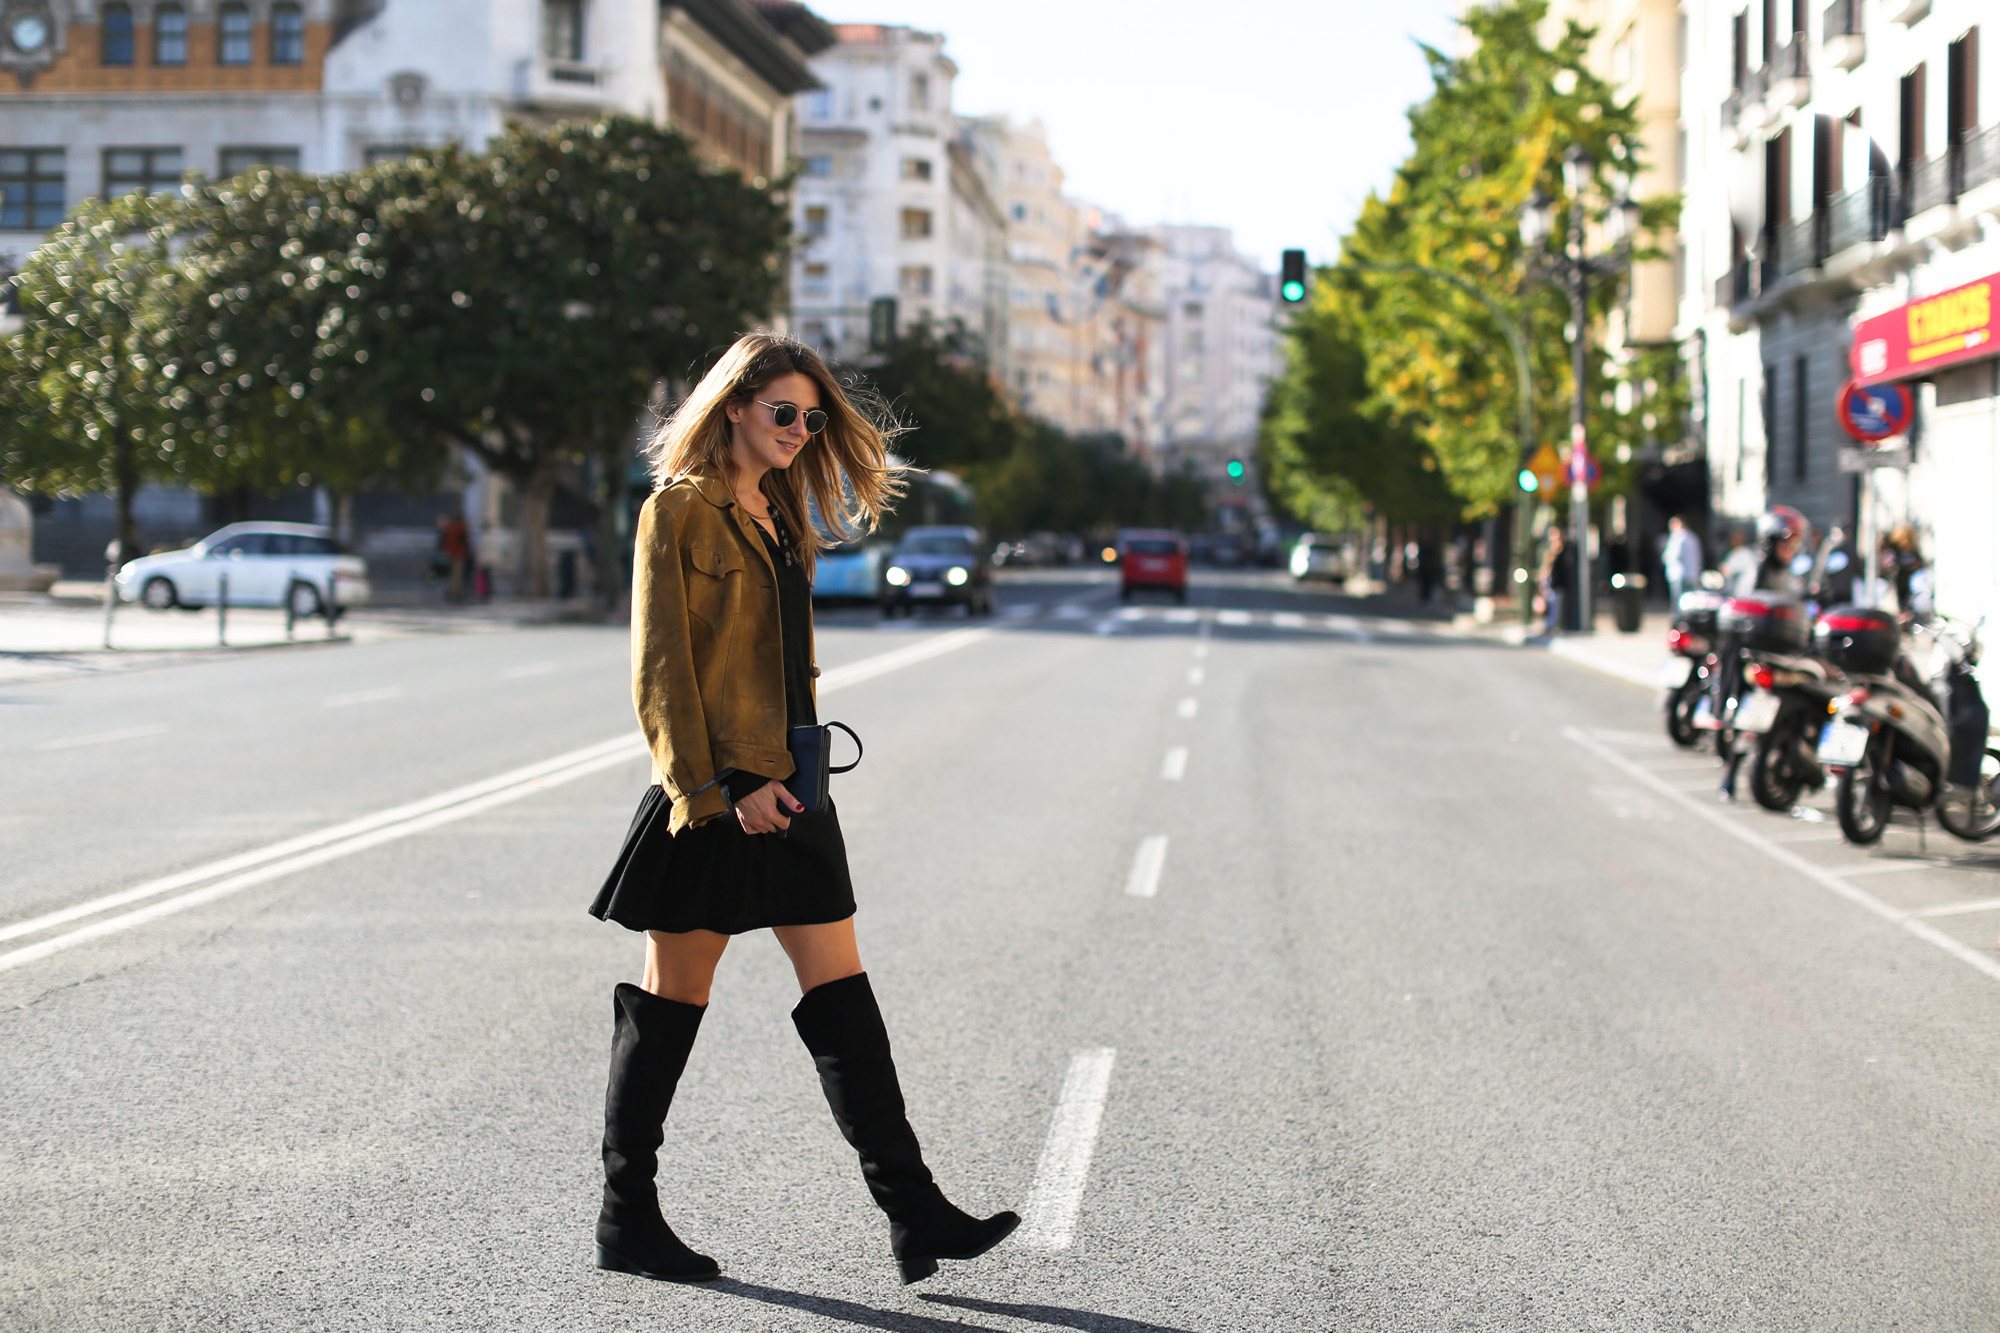 Clochet_streetstyle_suede_ankle_high_boots_boho_minidress-4